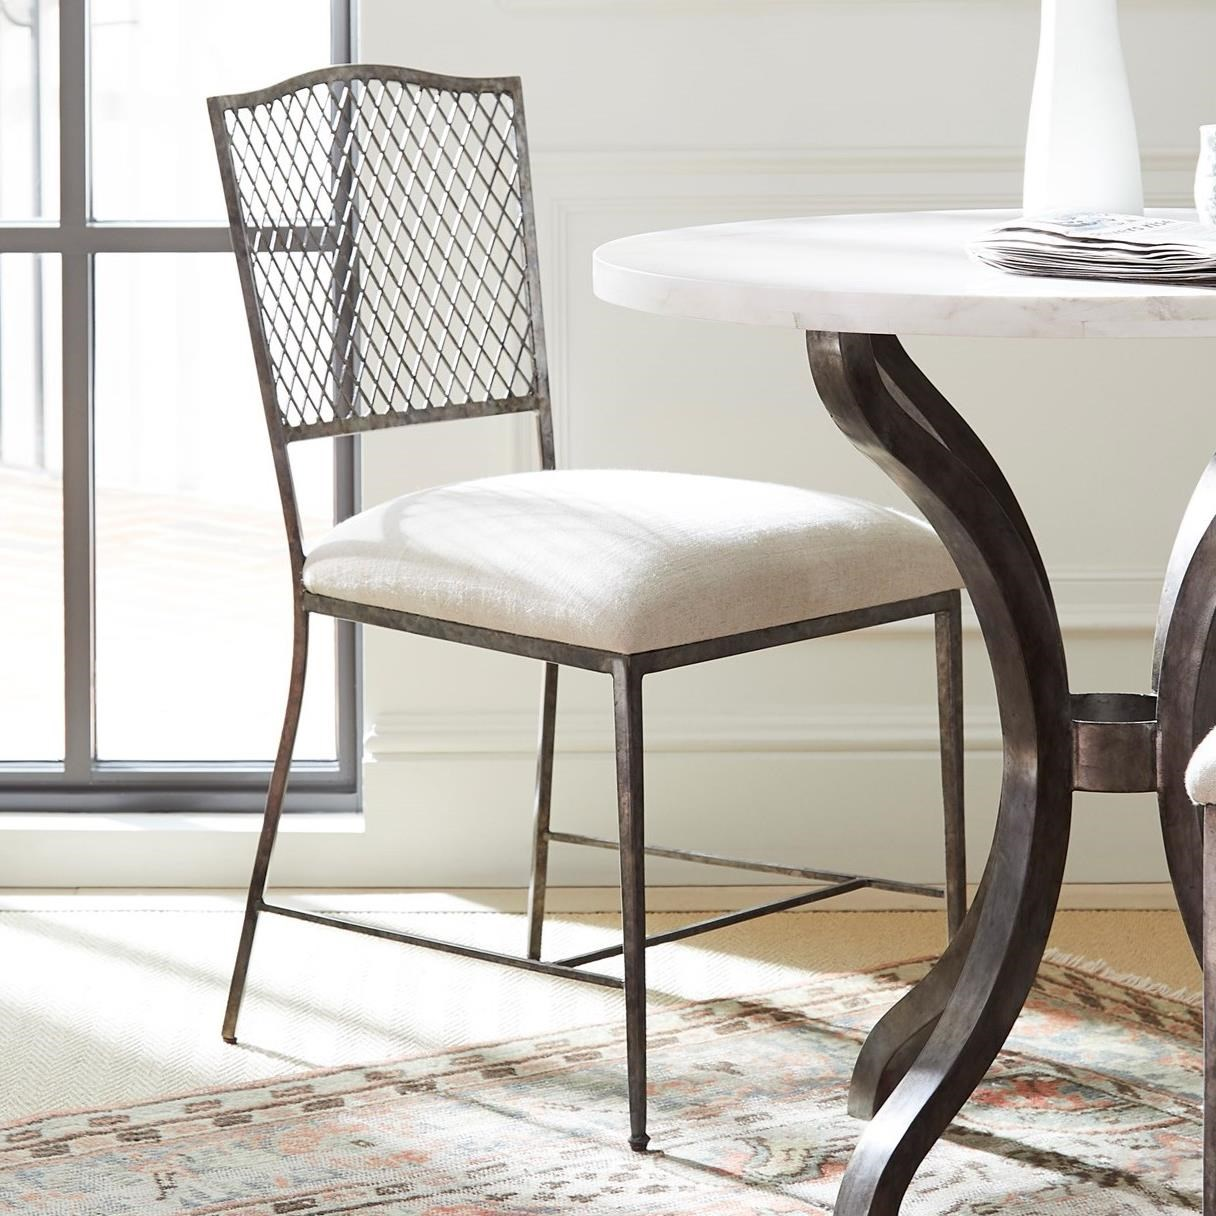 Willow Bistro Chair by Stanley Furniture at Alison Craig Home Furnishings